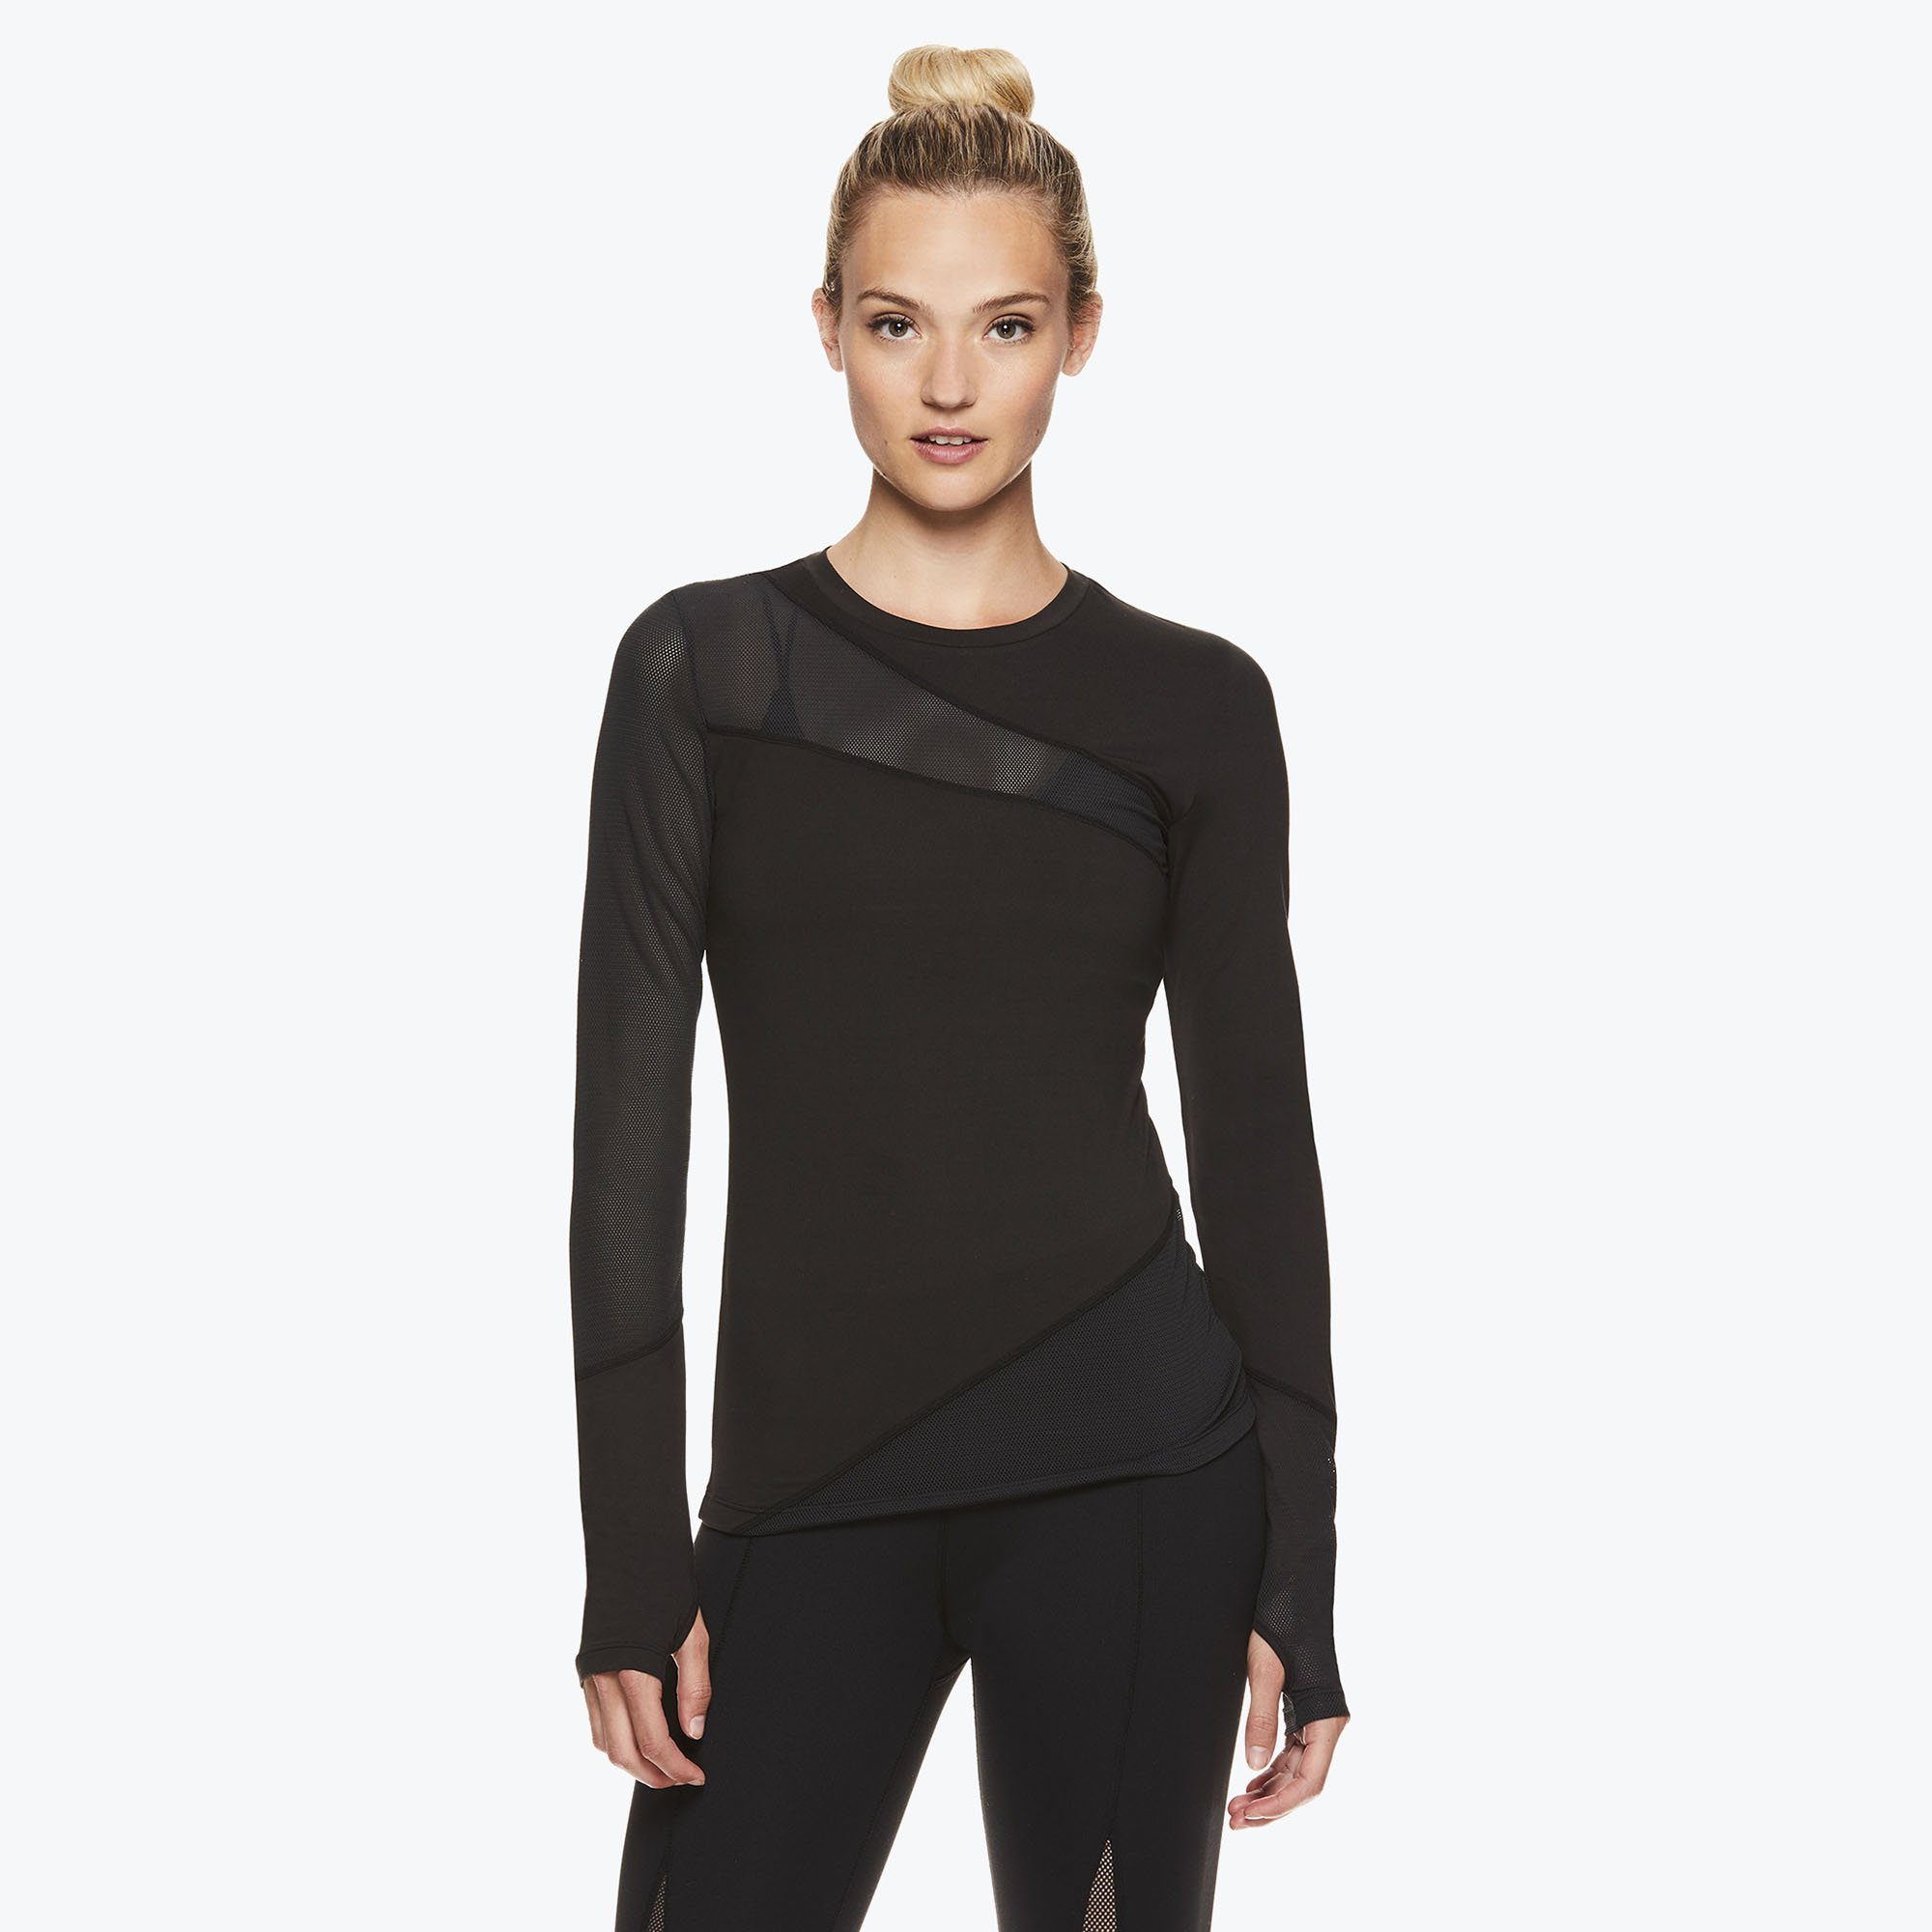 gaiam jessica biel capsule collection athleisure madison long sleeve mesh piecing top